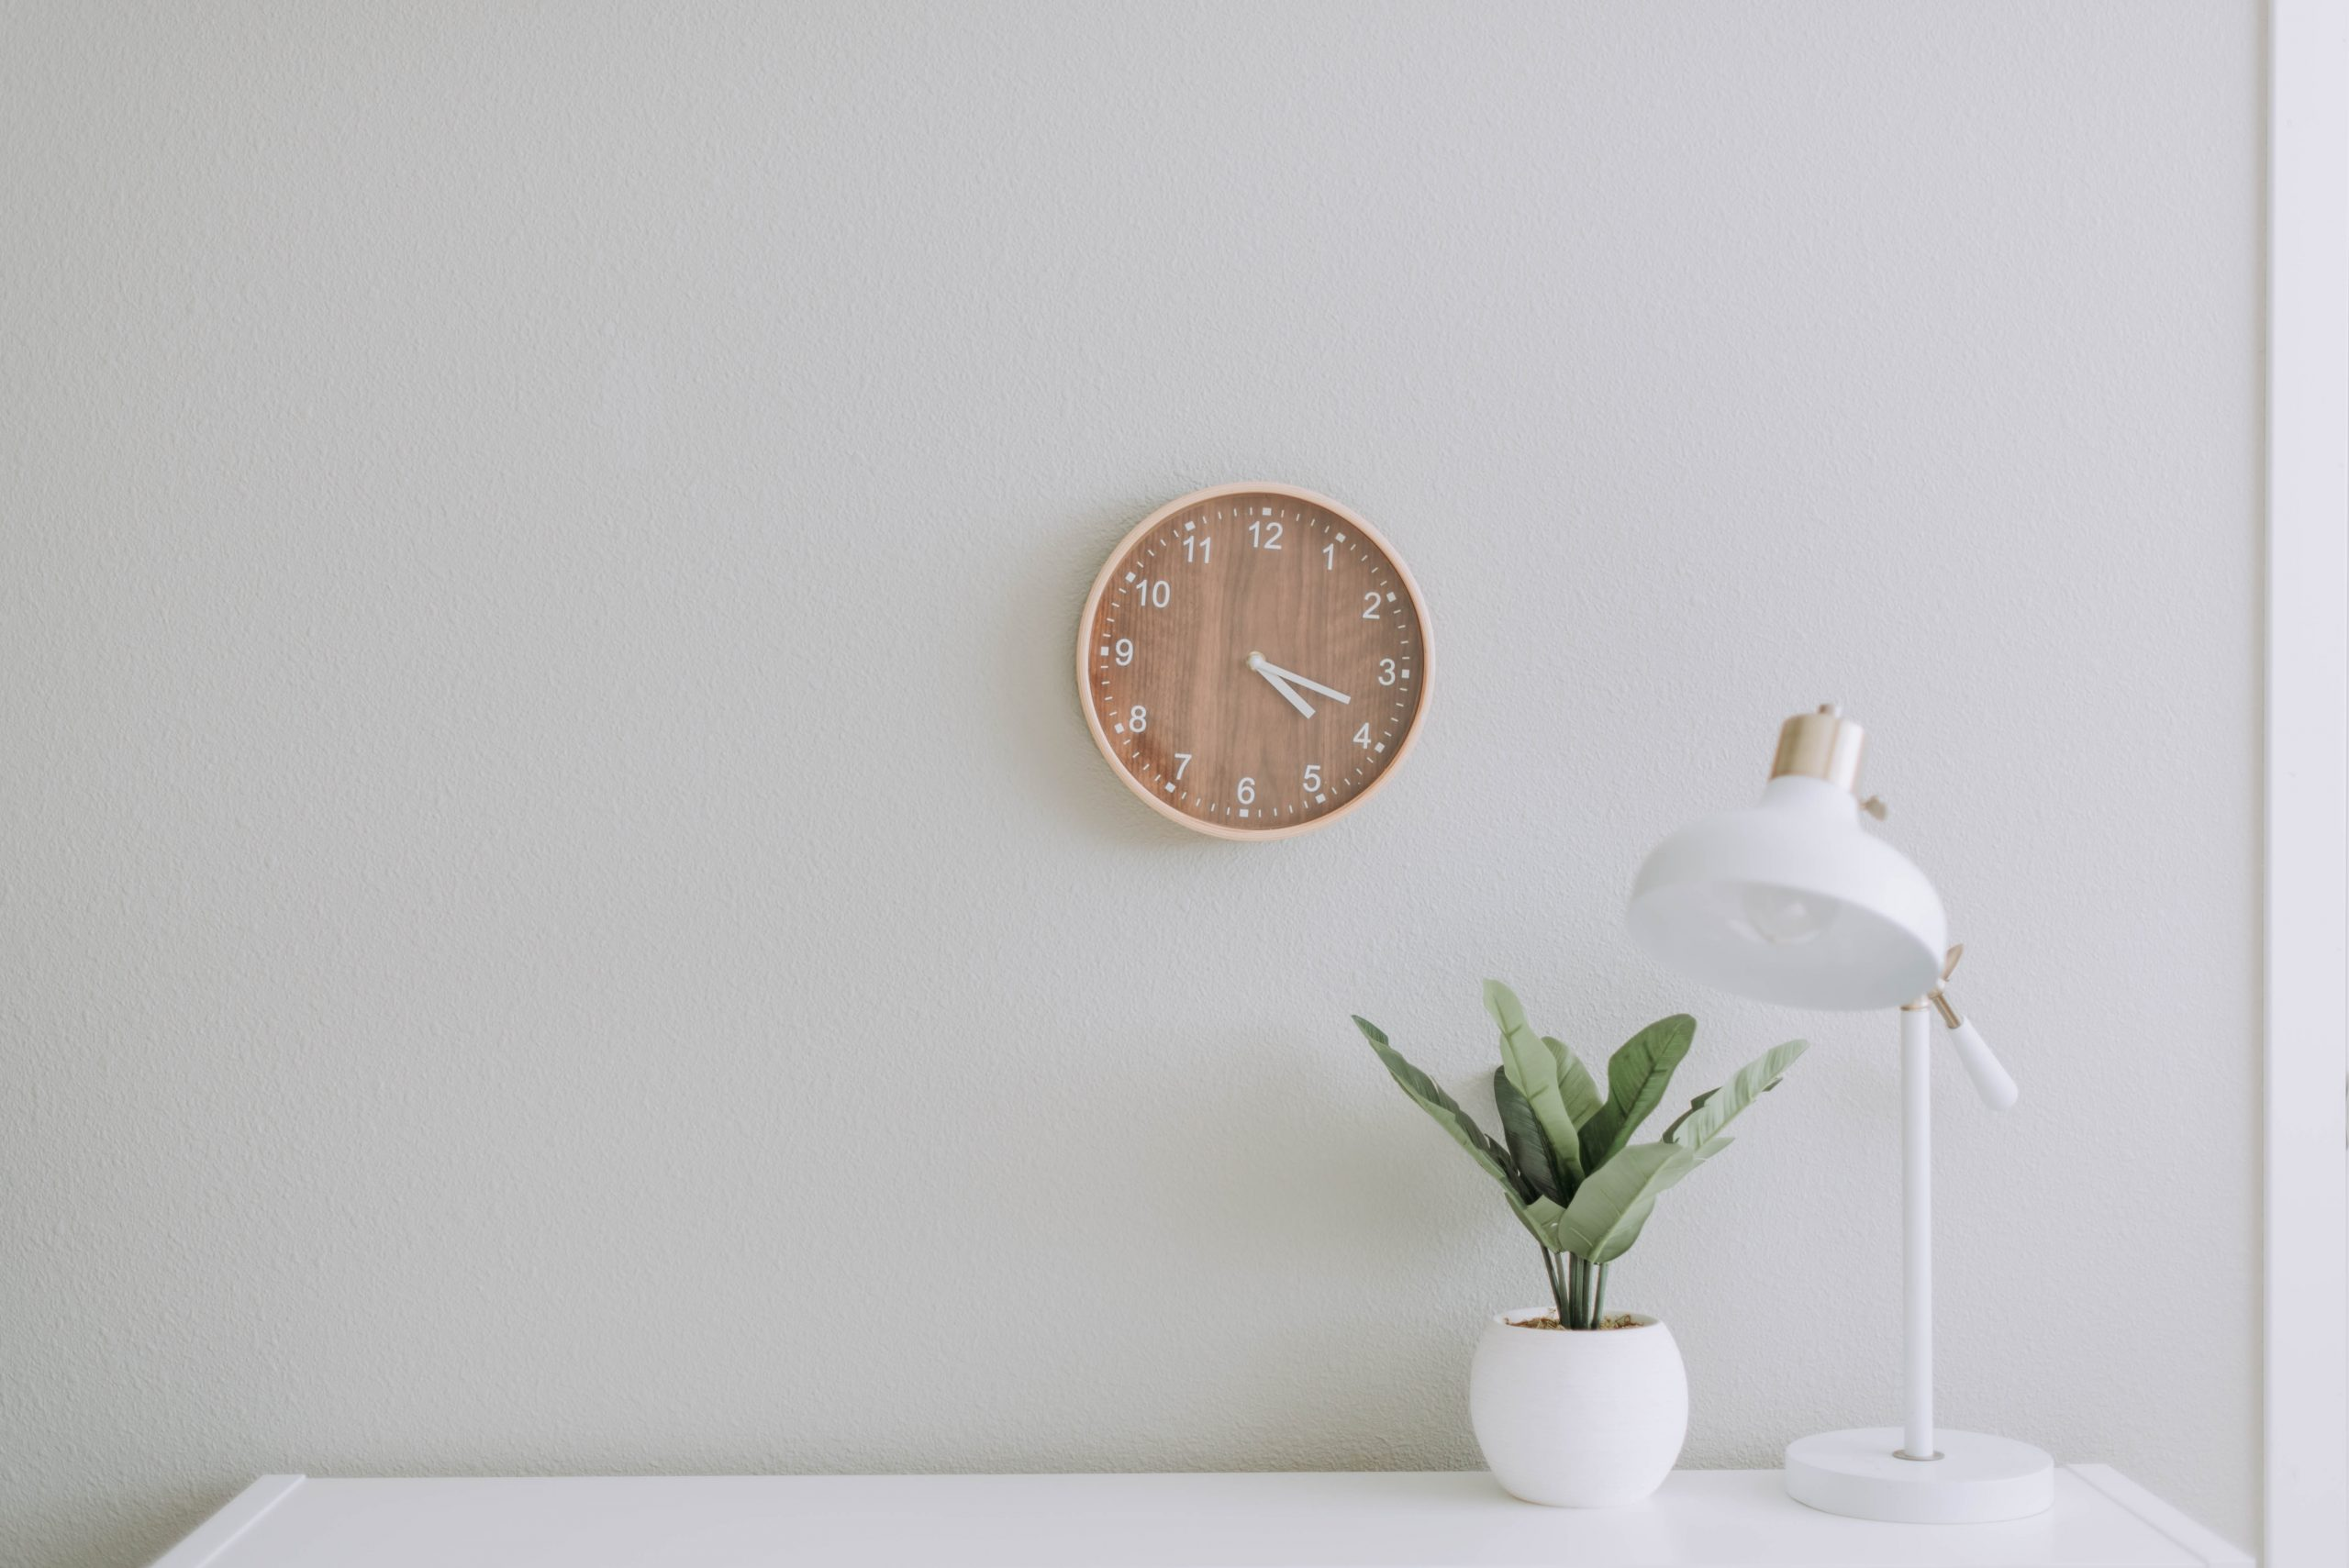 White room with desk, plant, light and clock